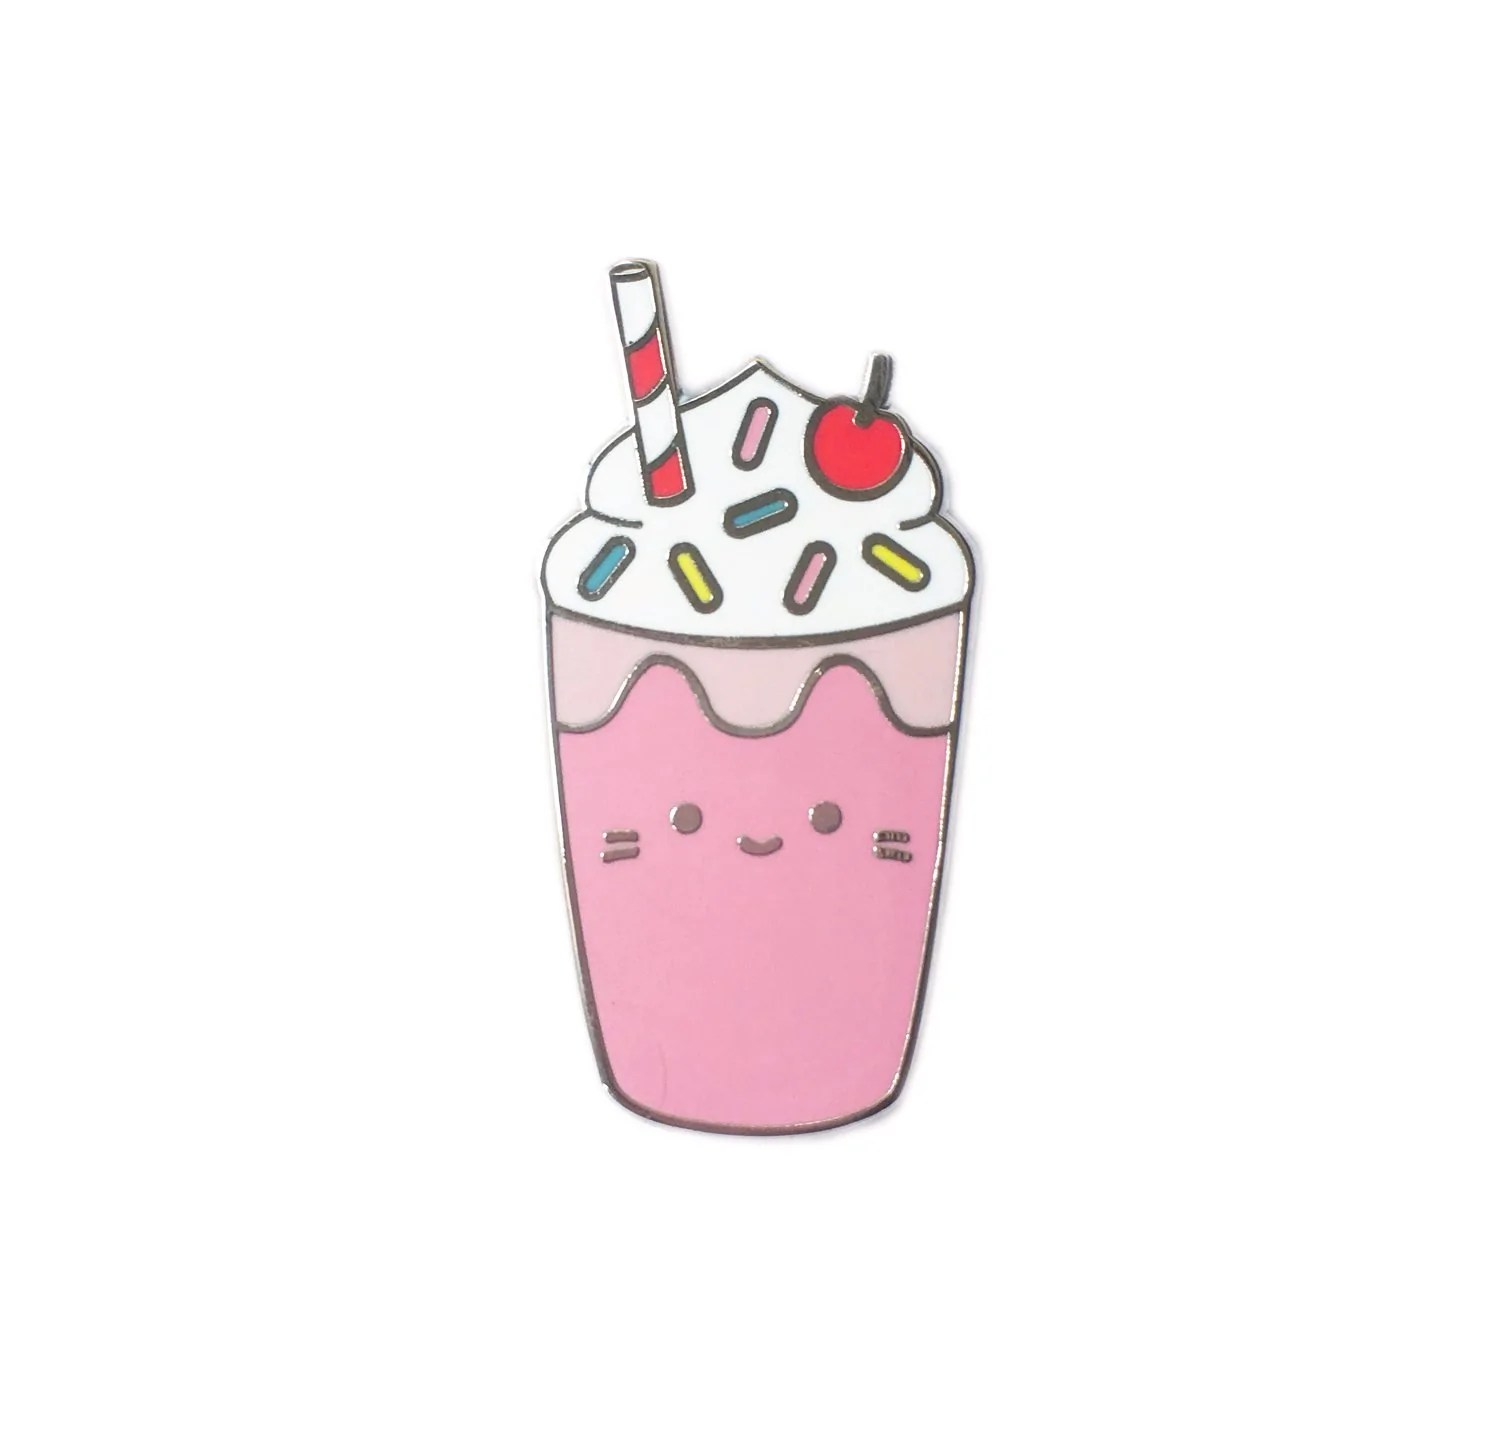 Starbucks Wallpaper Cute Milkshake Cat Enamel Pin Sparkle Collective